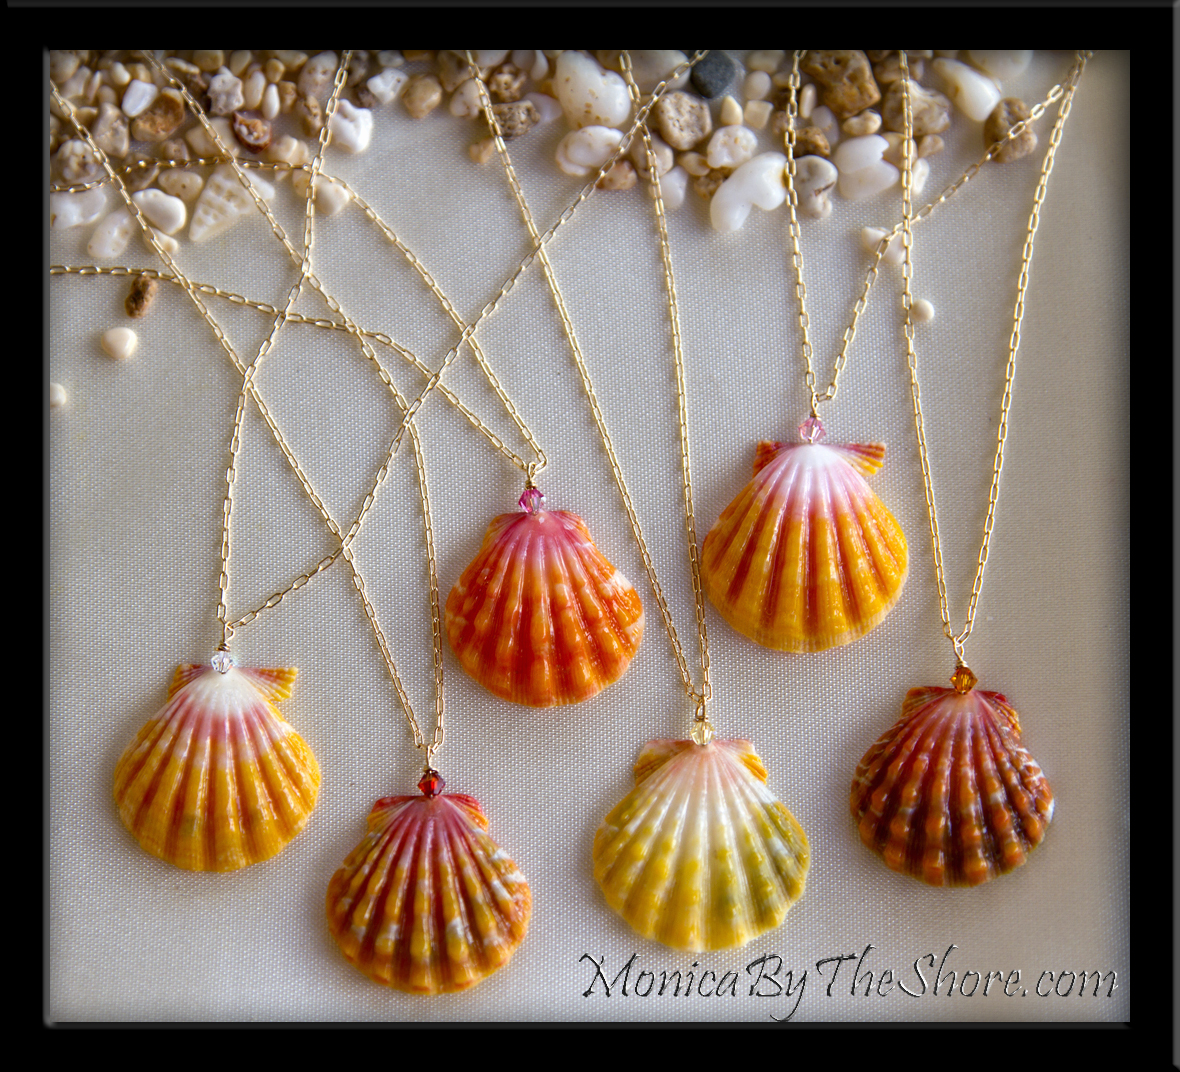 Buying Shells For Crafts